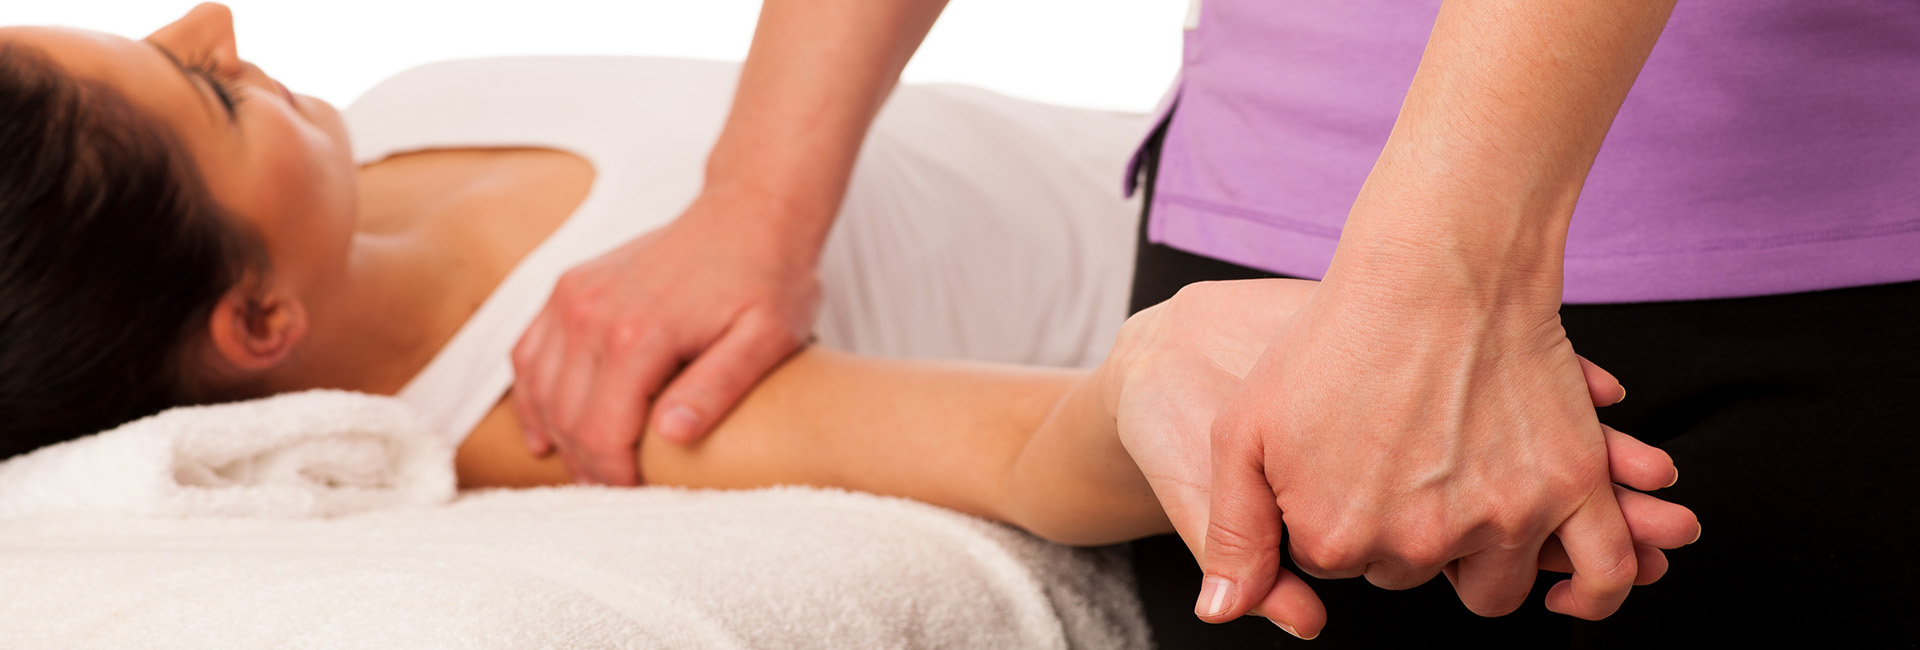 Elevation Physiotherapy & Wellness ::